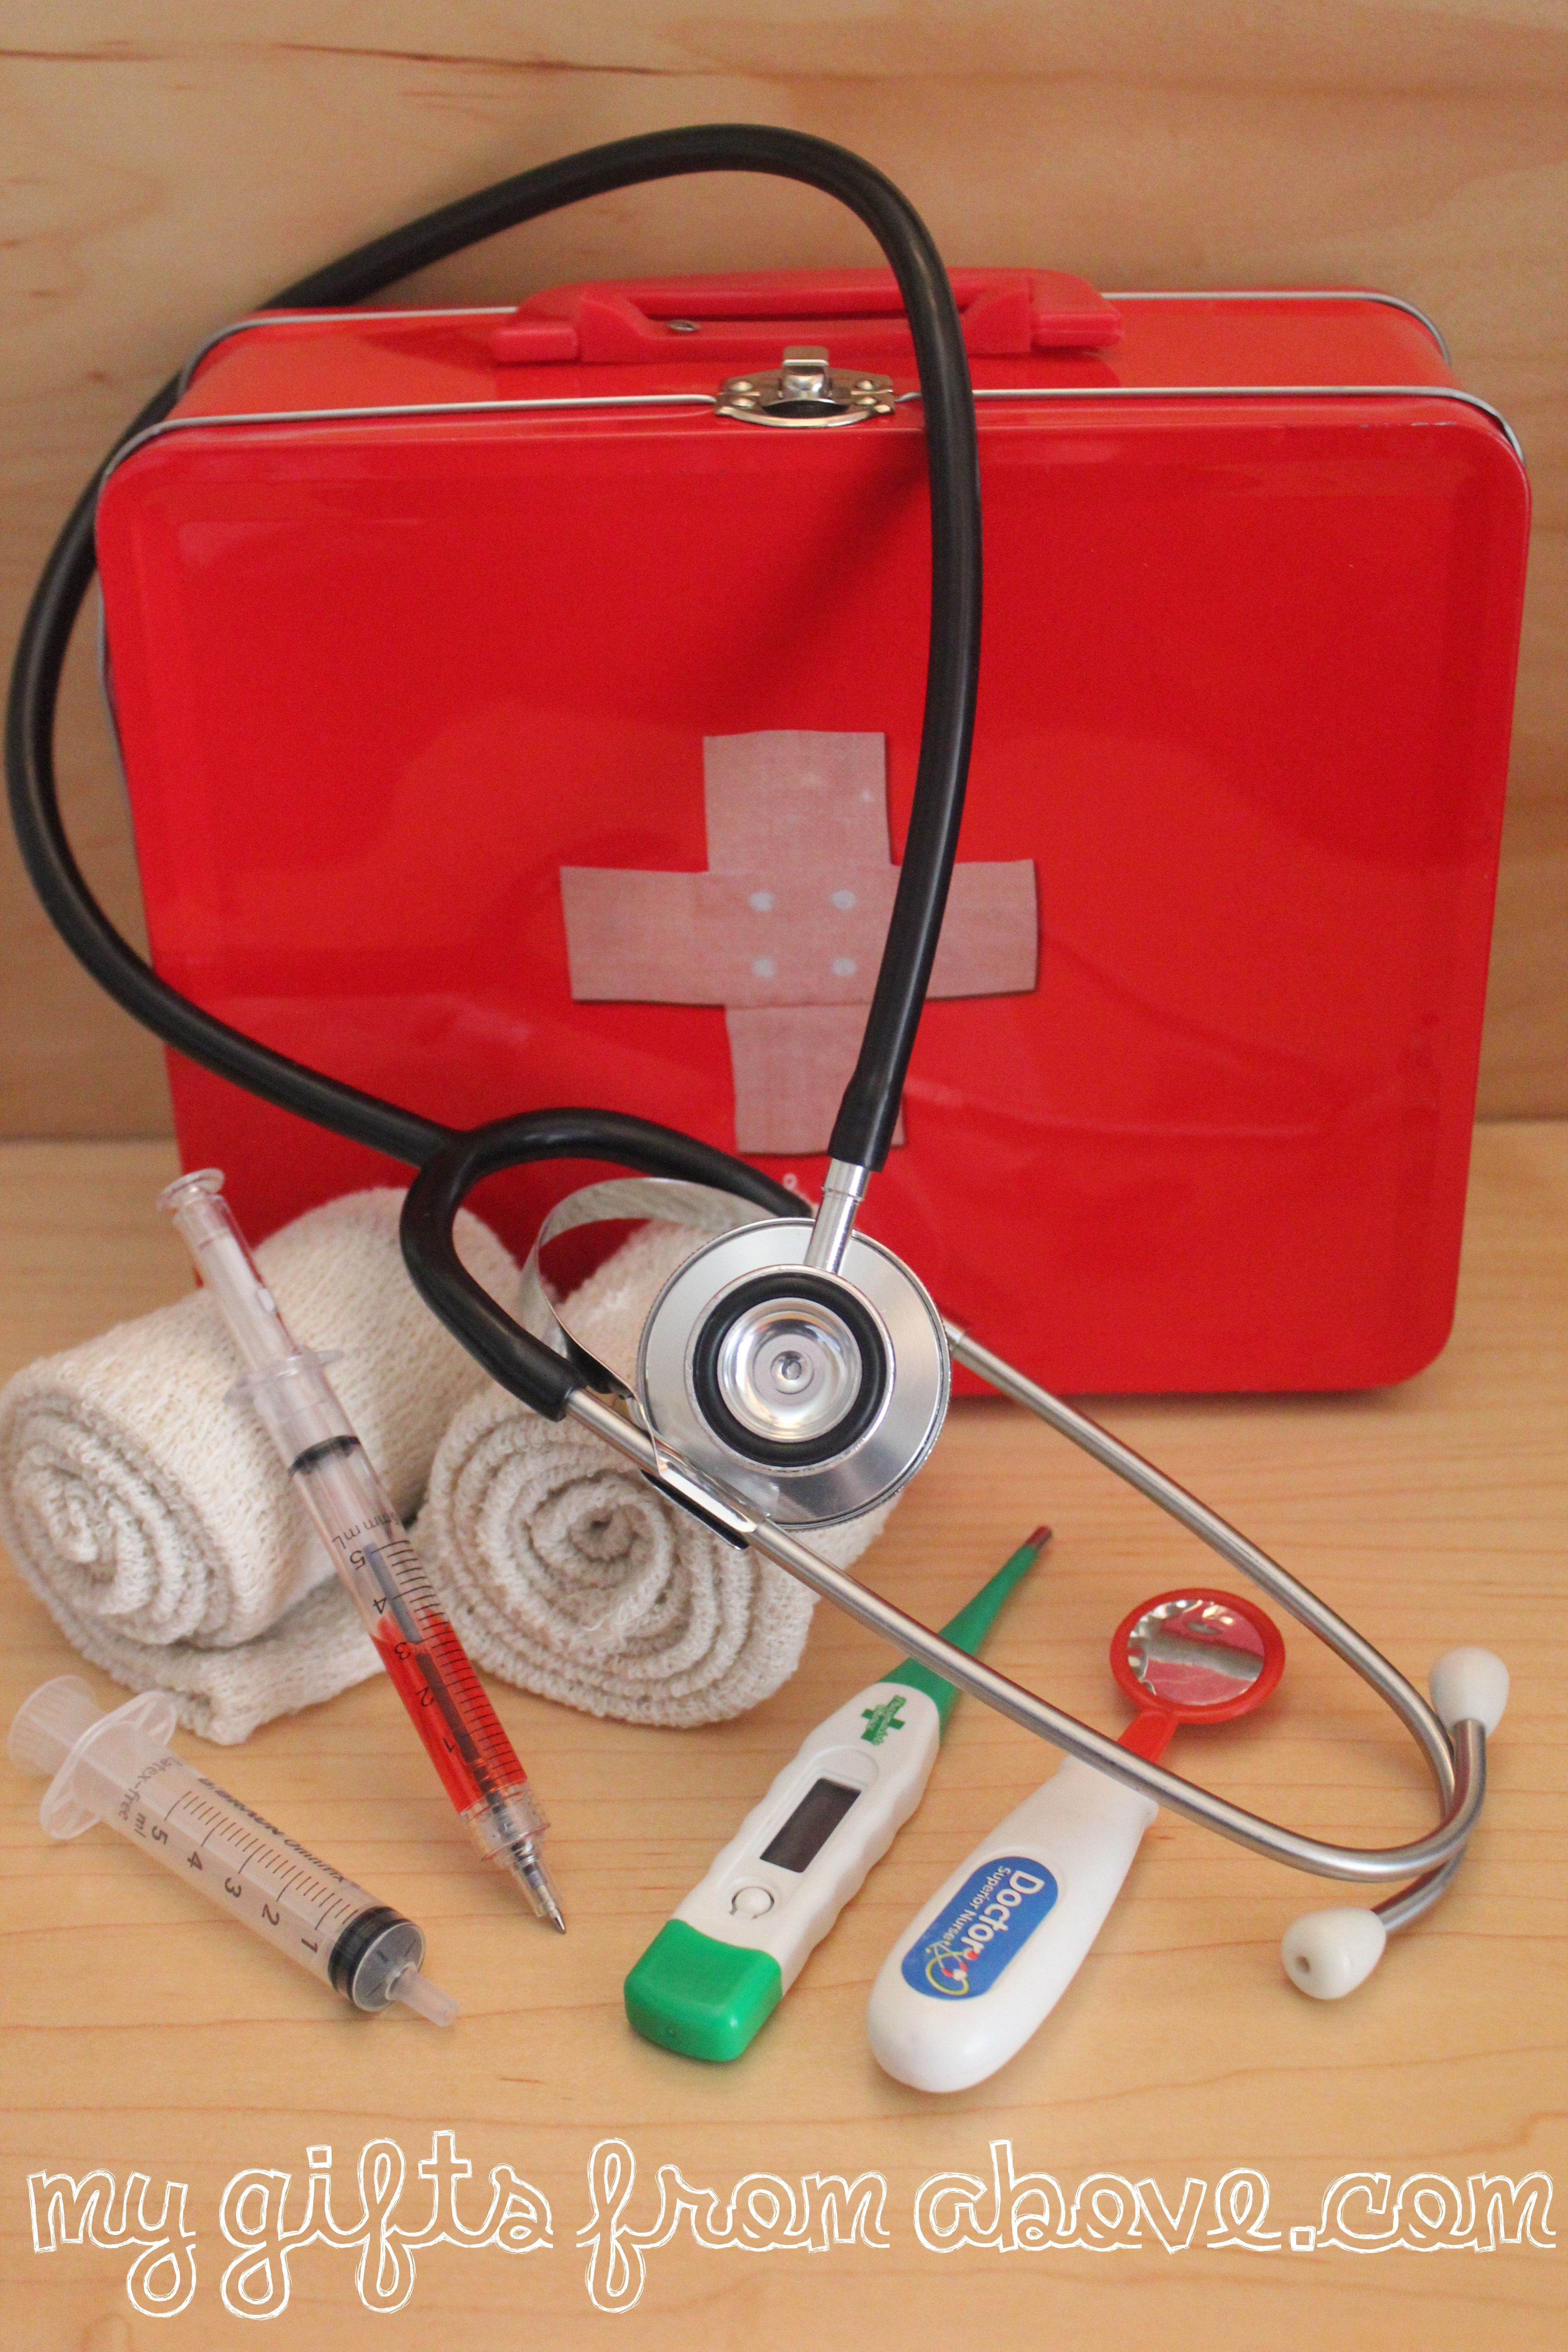 Assemble doctorus kit real items play doctor role play